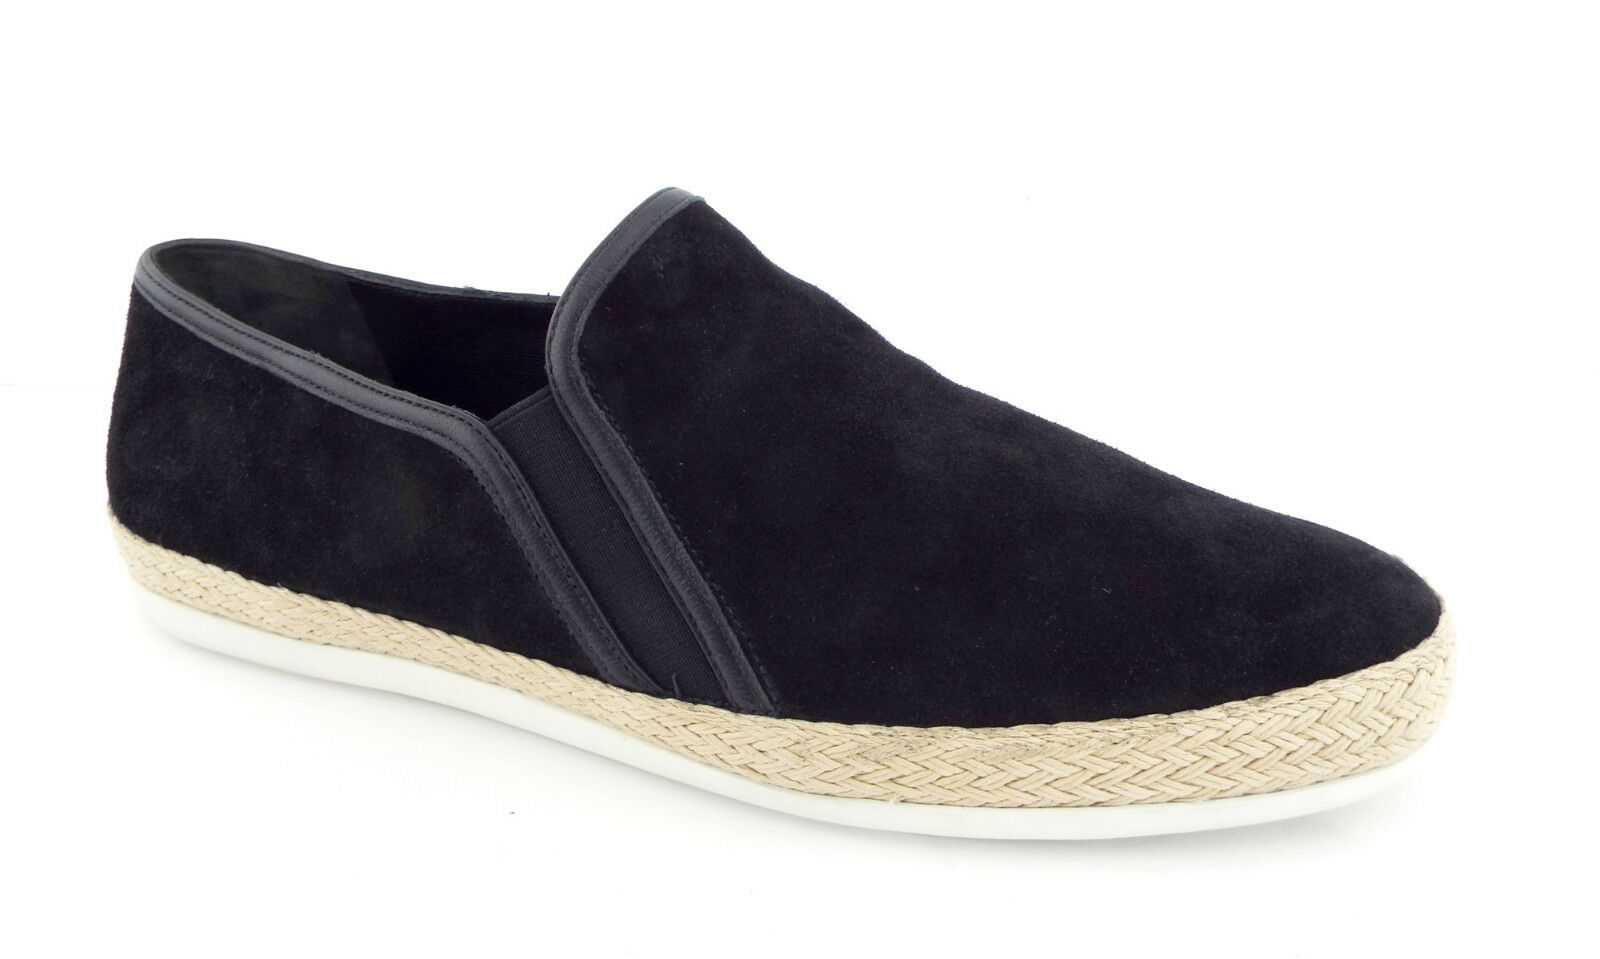 New VINCE Size 11 ACKER Black Suede Slip Ons Sneakers shoes 41